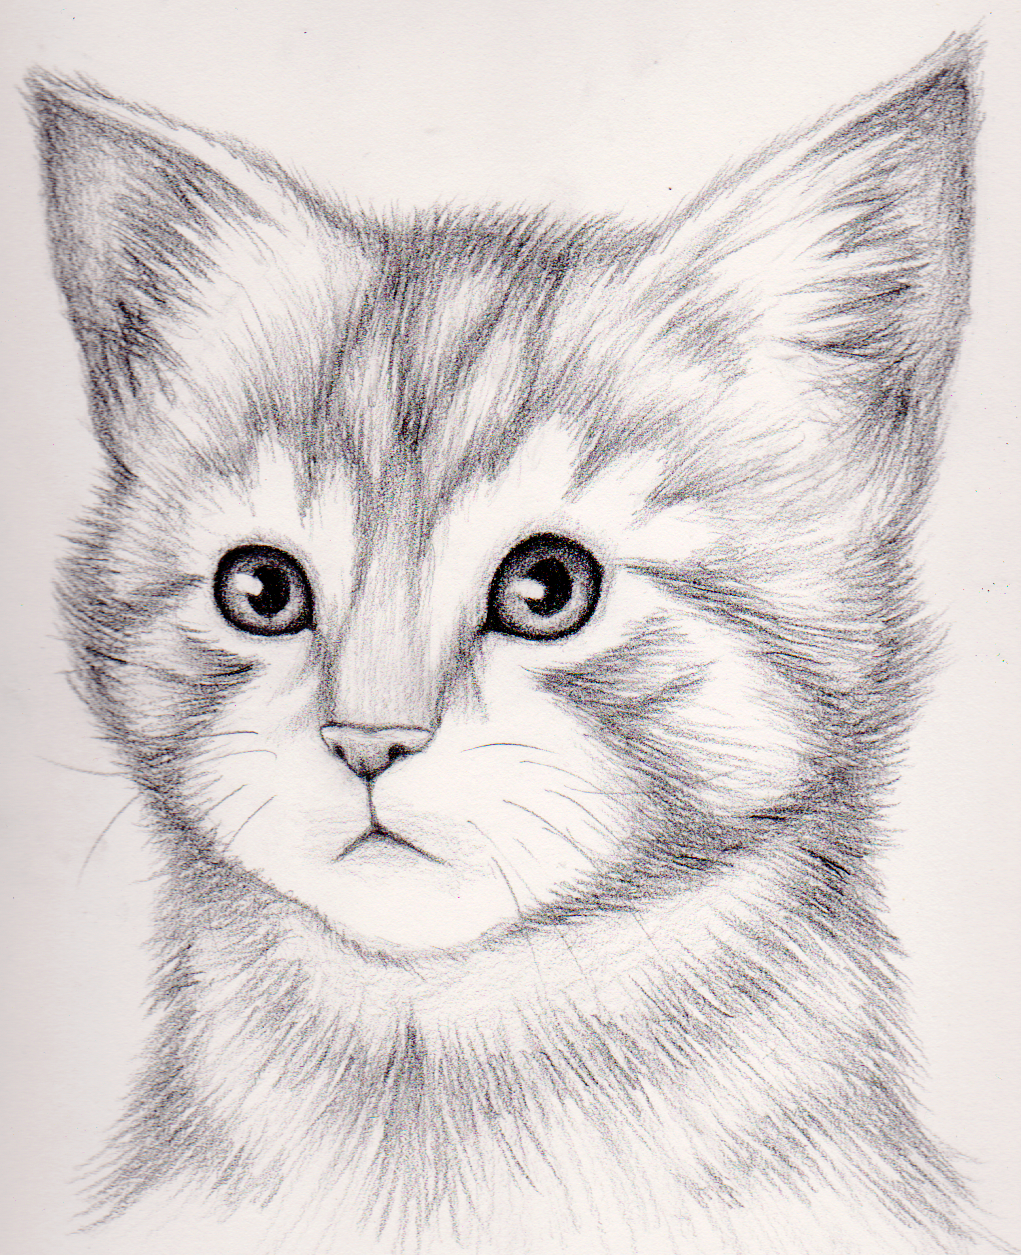 How To Draw A Realistic Kitten Draw Realistic Kitten Realistic Kitten Drawing Drawings Cat Portraits